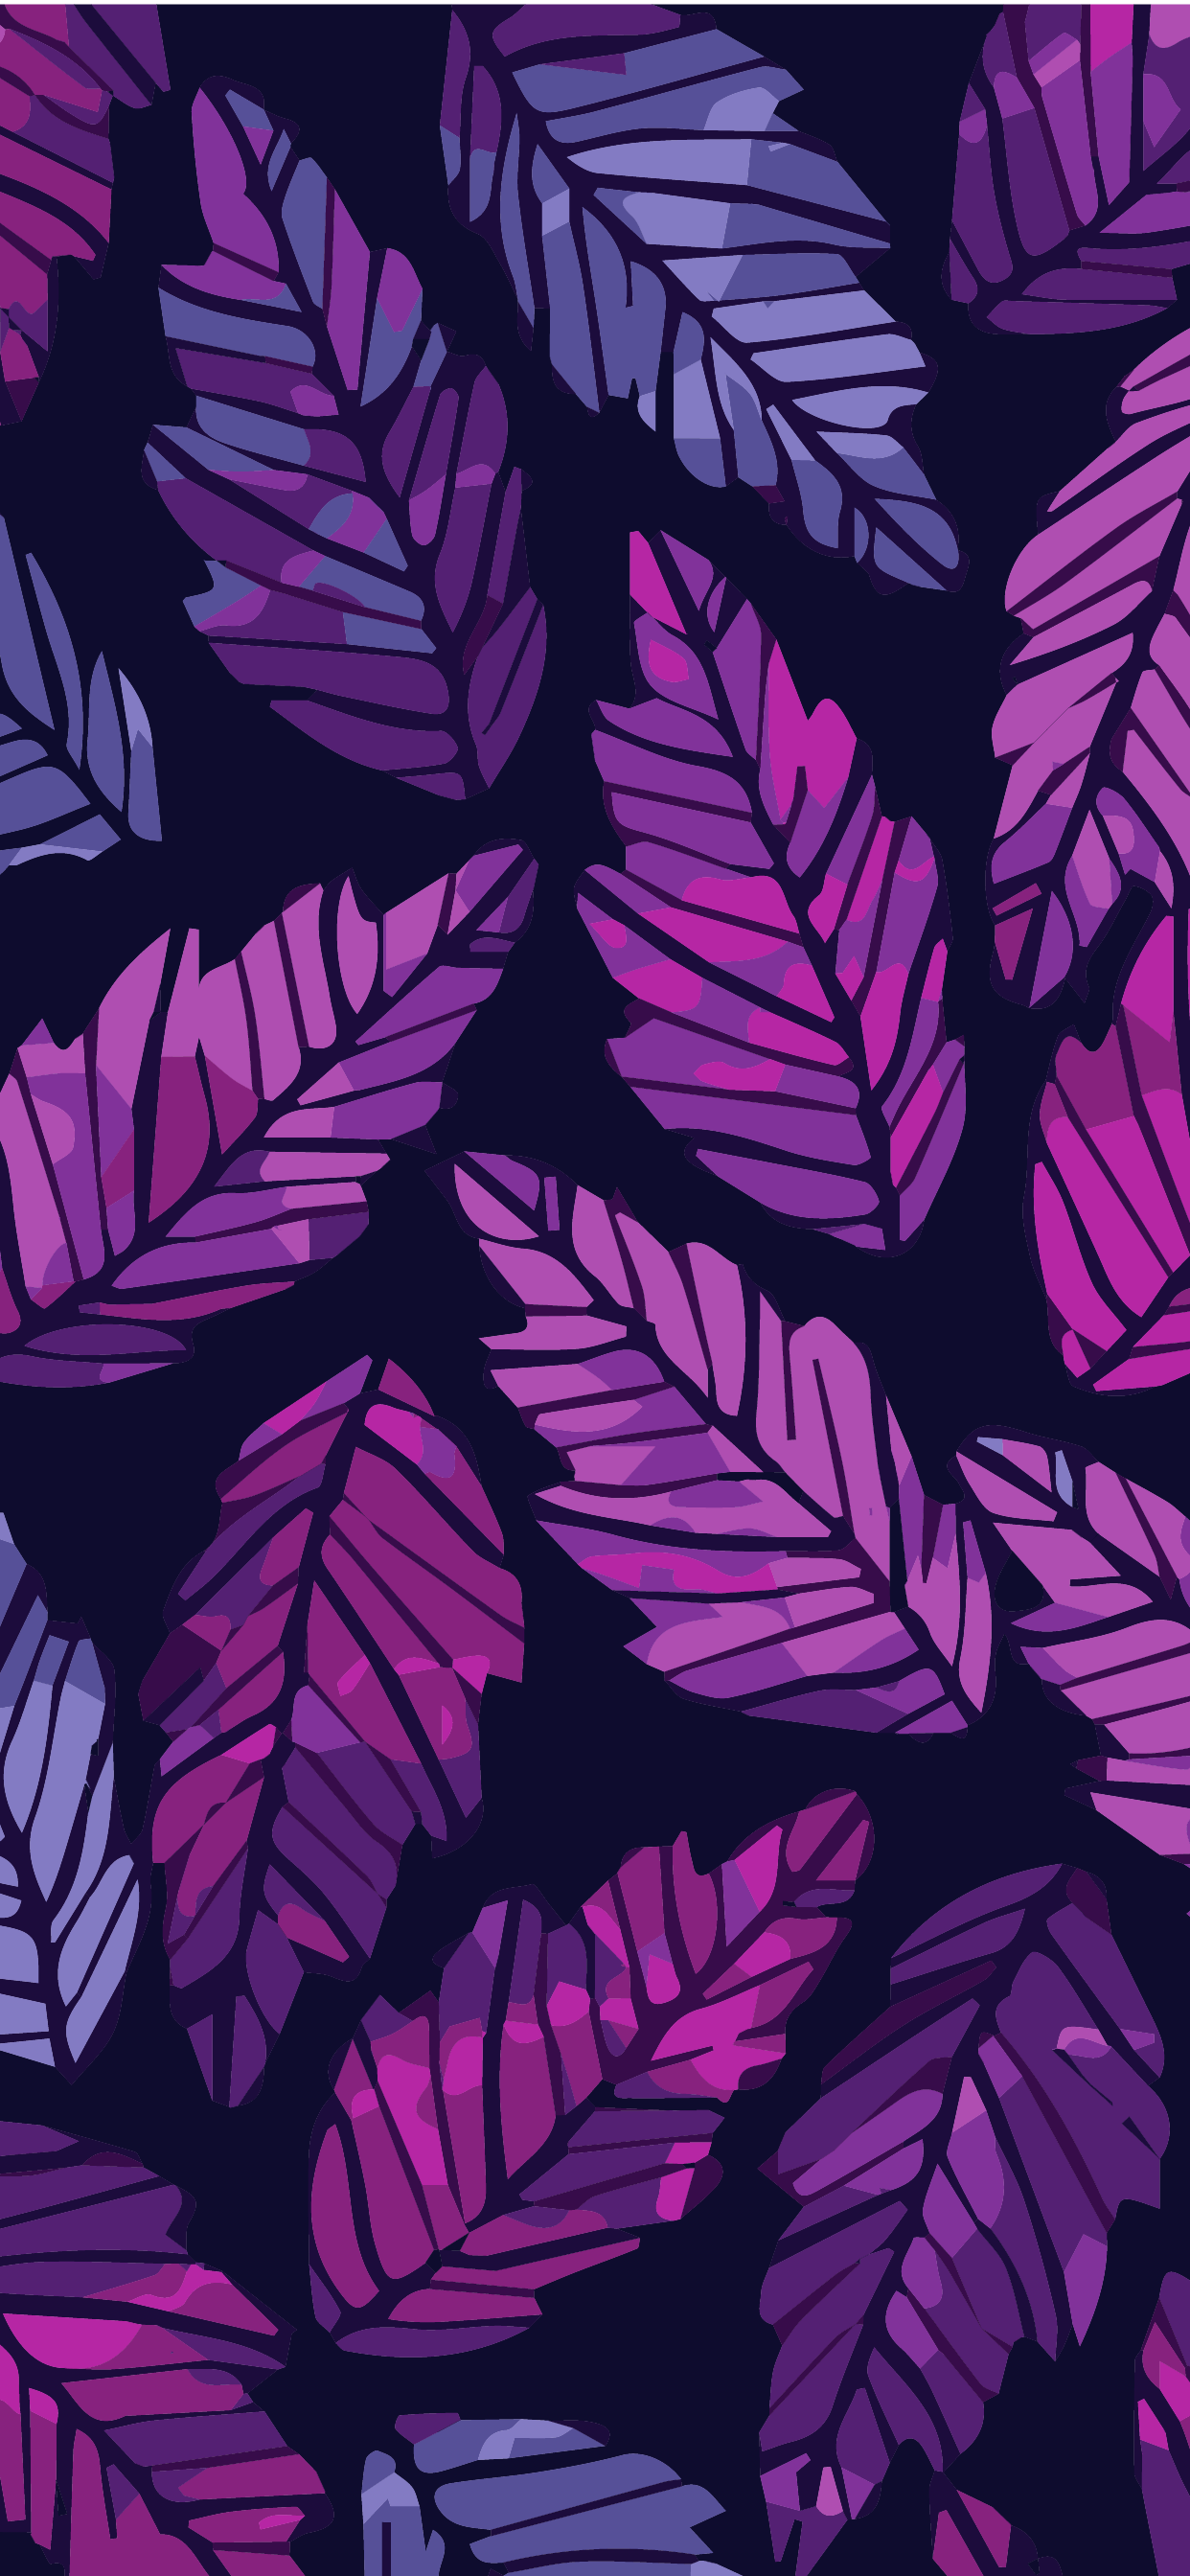 phone wallpaper pattern hd leaf aesthetic purple and pink